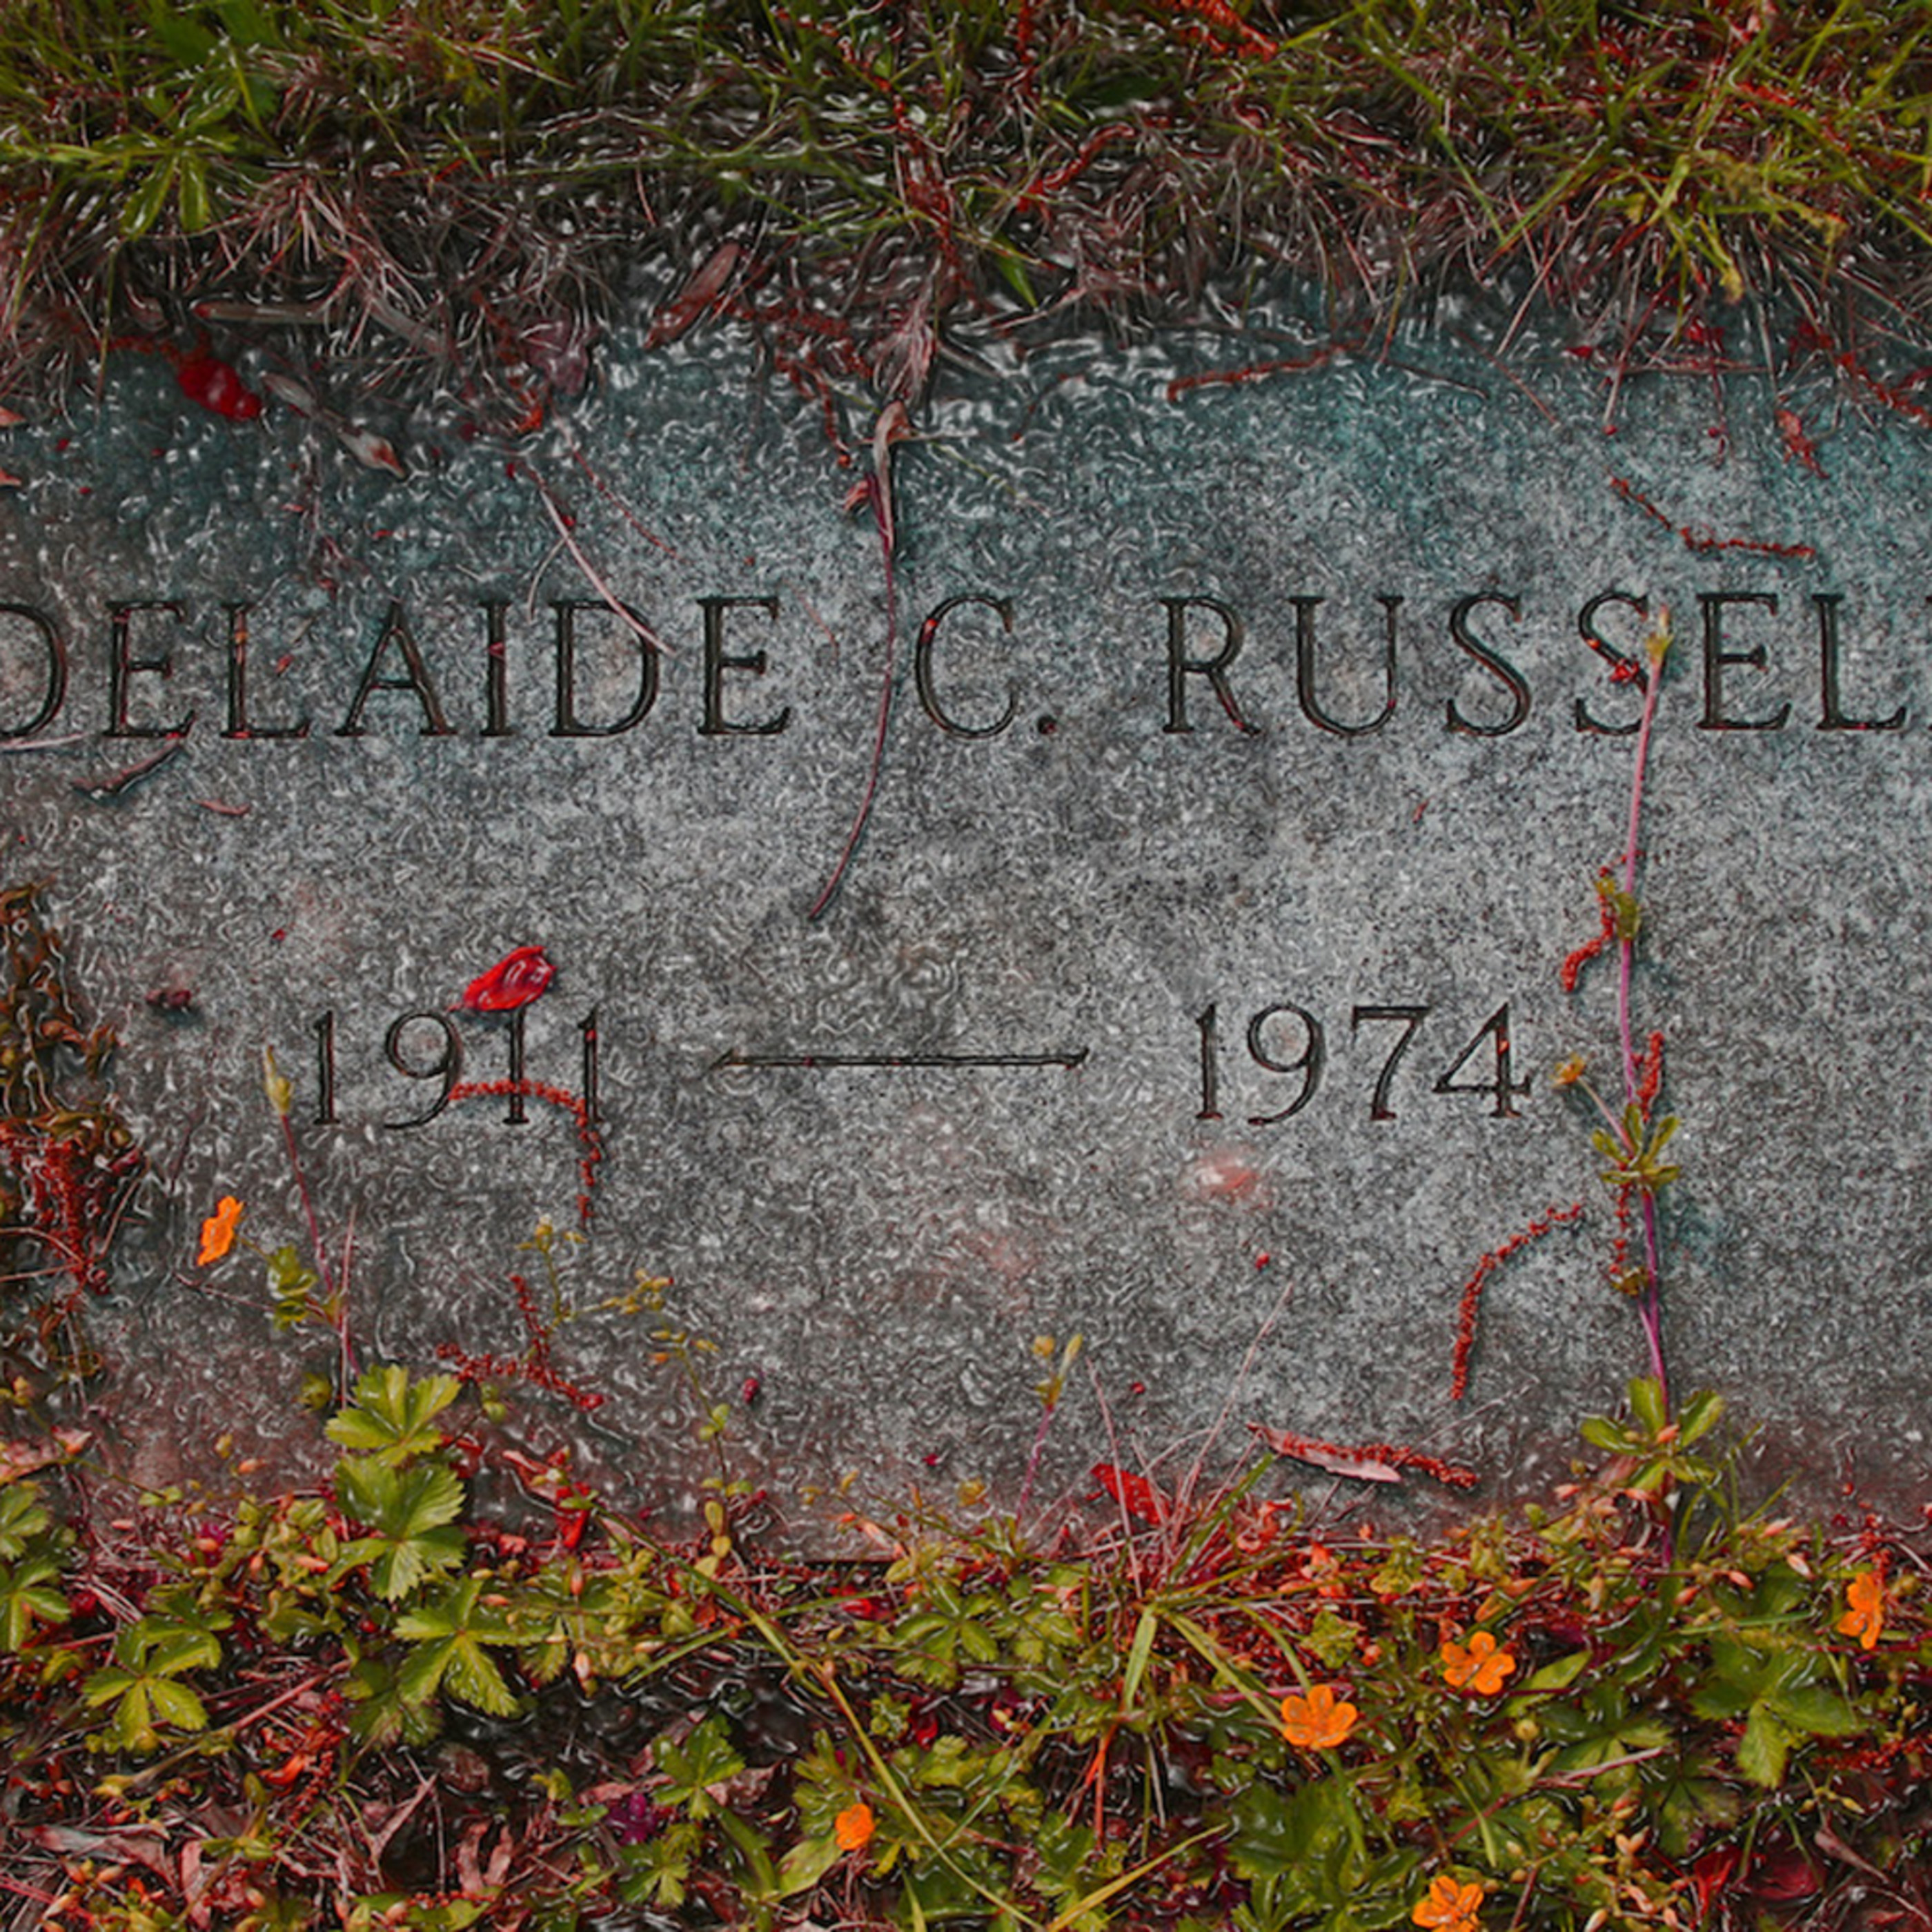 Adelaide c russell website s67ess